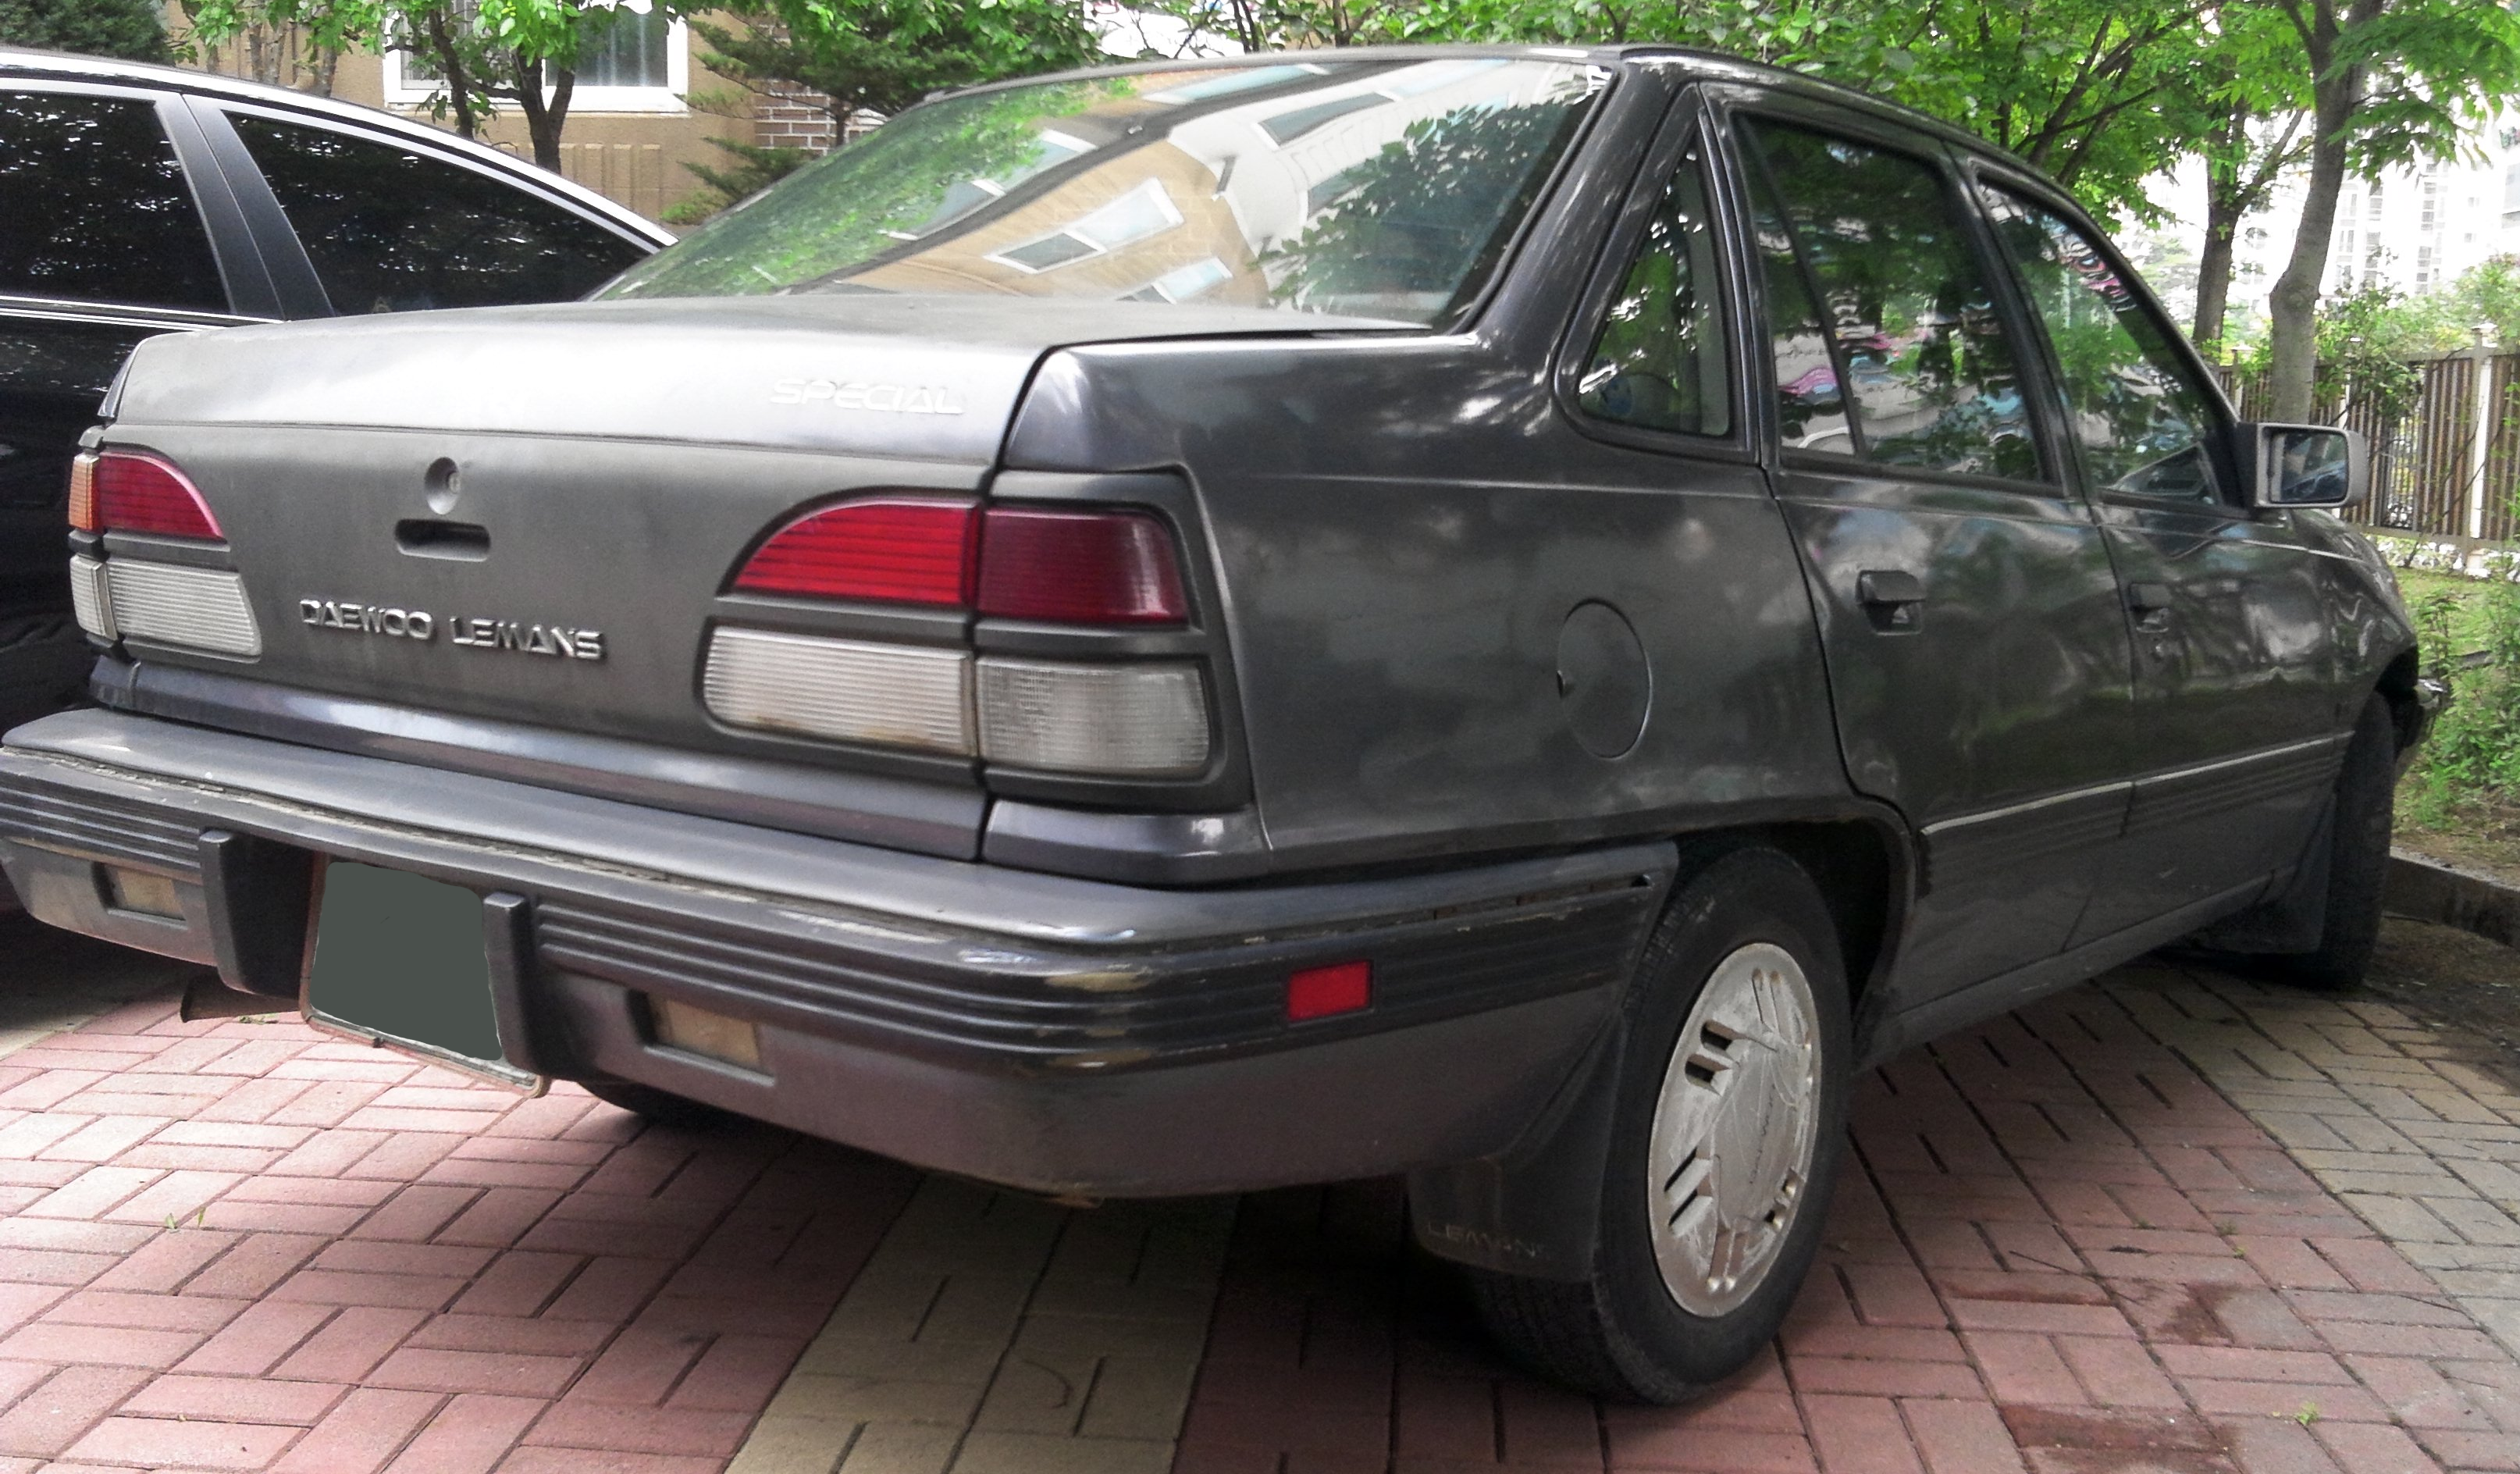 File:2013080603 Daewoo LeMans.png - Wikimedia Commons